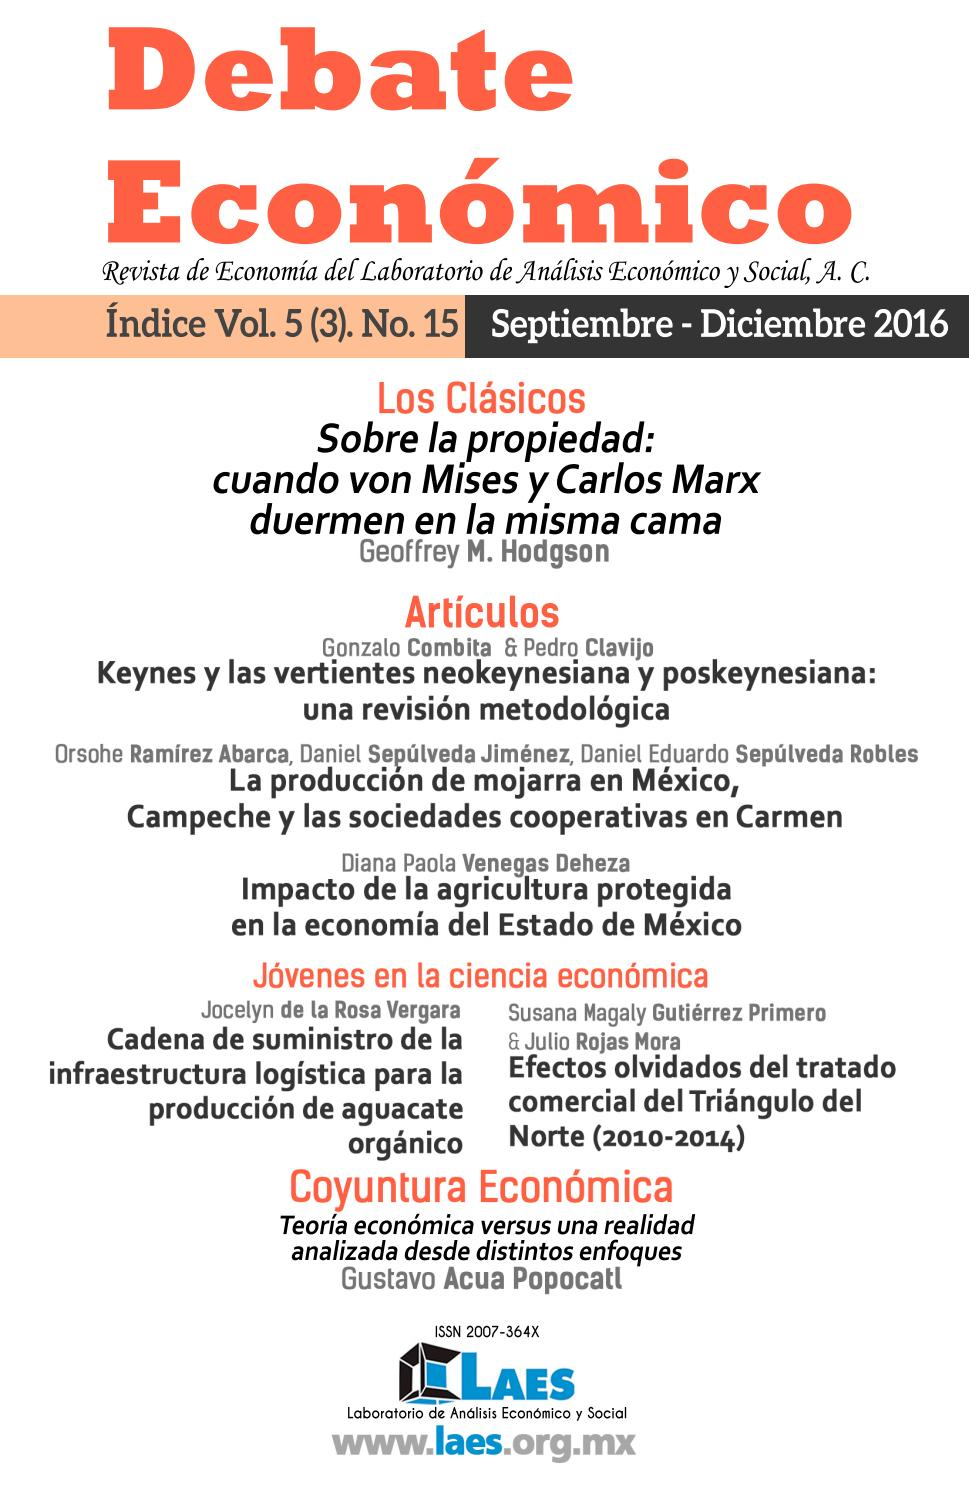 Debate Económico No.15 by LAES MEXICO - issuu